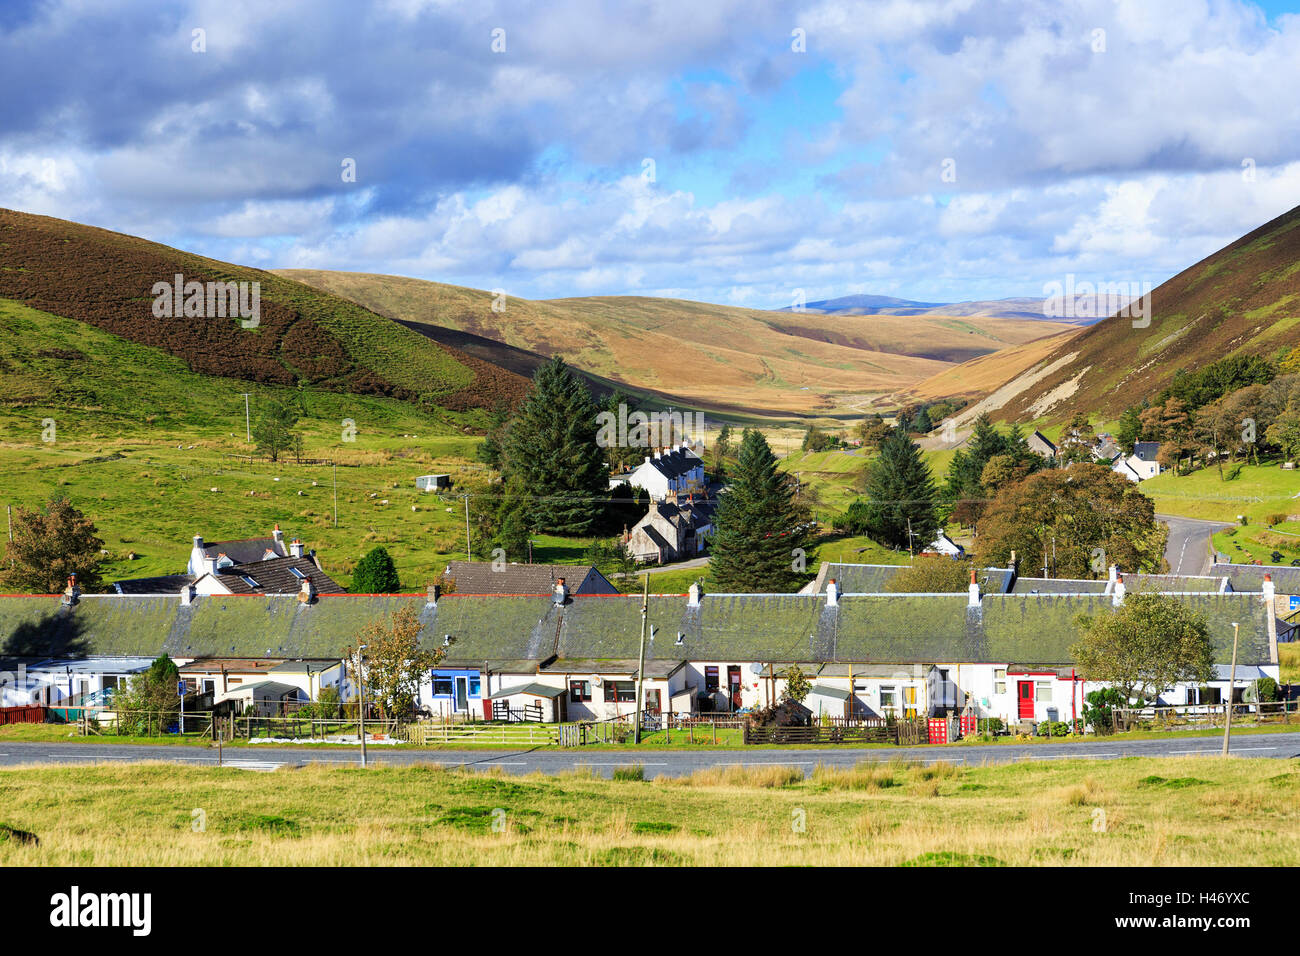 Village of Wanlockhead, Dumfrieshire, the highest village in Scotland, 1531 feet above sealevel, and famous for - Stock Image